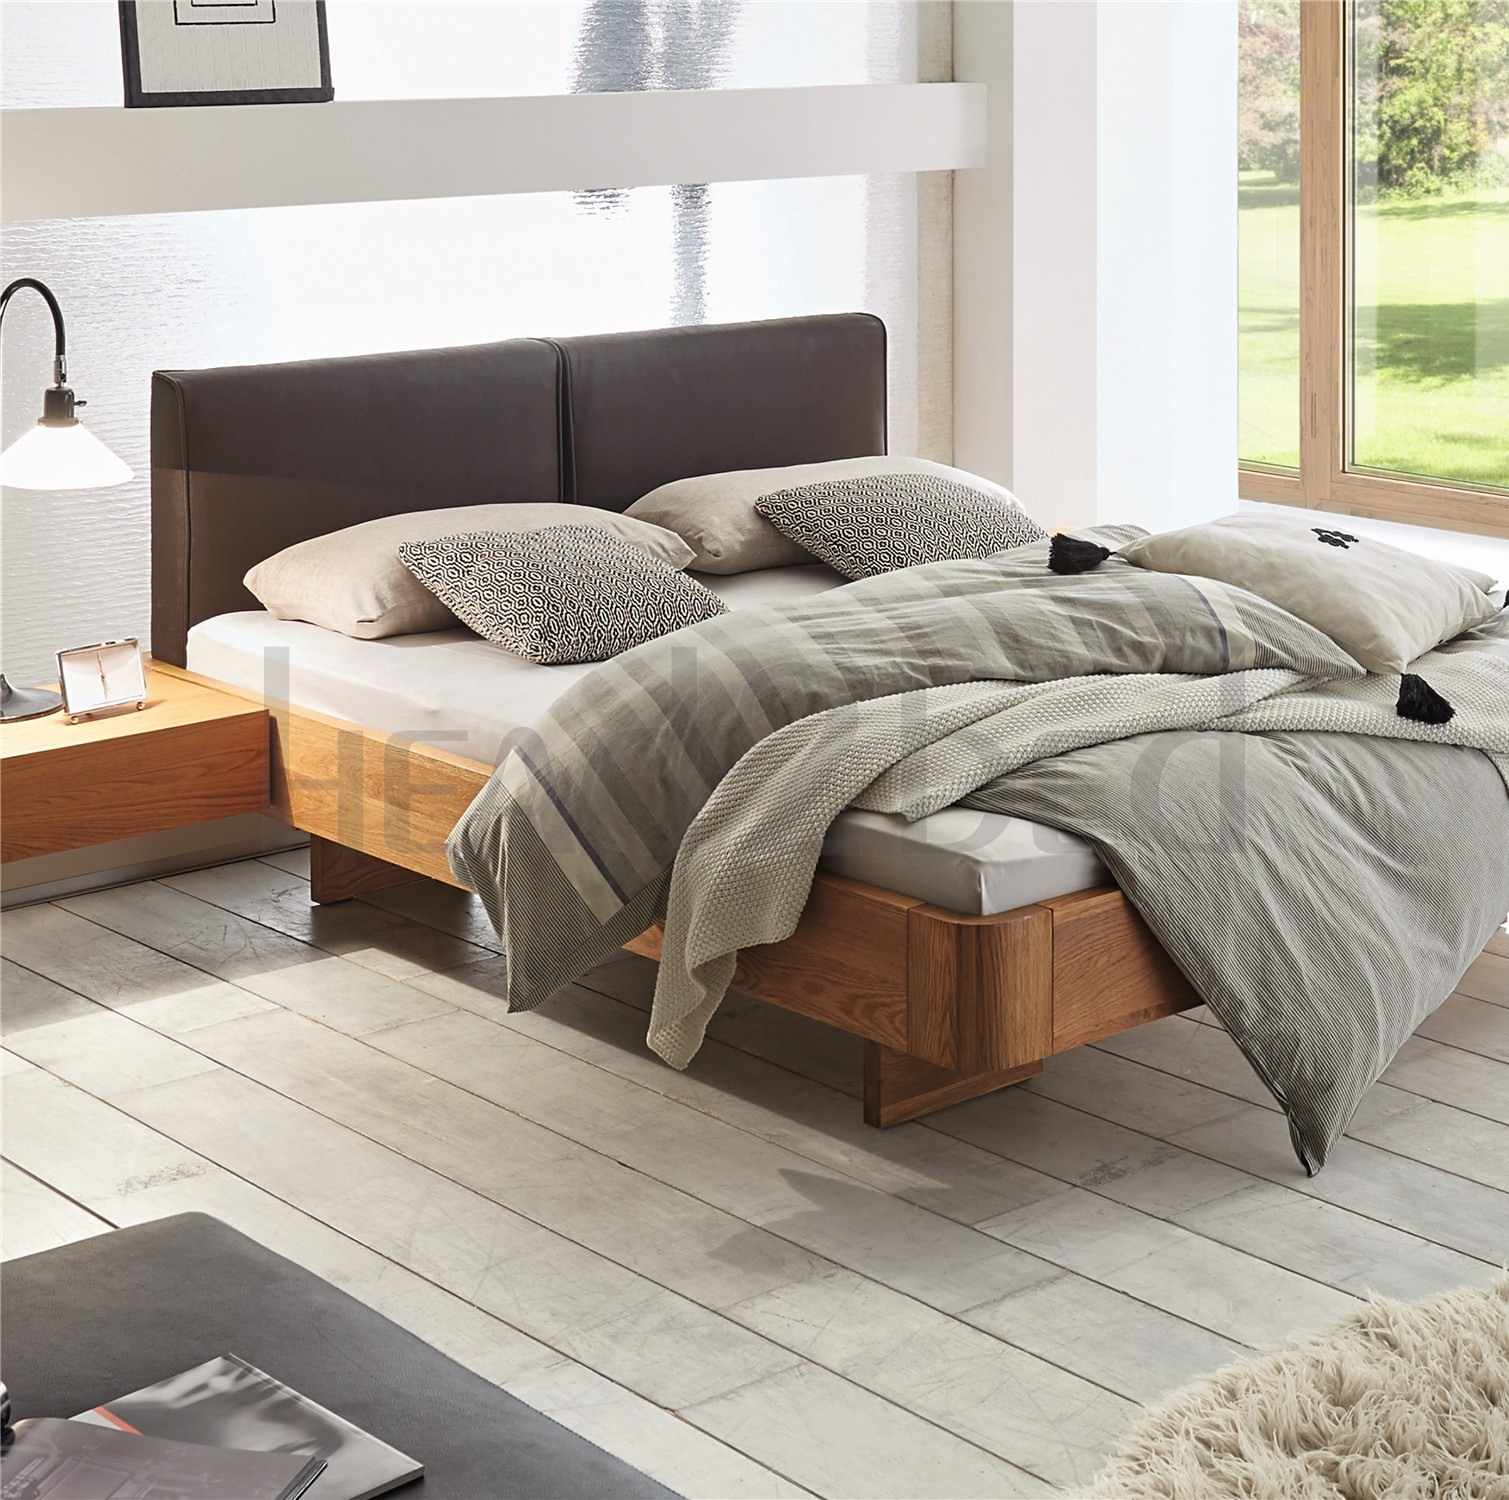 Leather Bed Oak Beds Und: Contemporary Designer Beds » Hasena Airon Cemoa Solid Oak